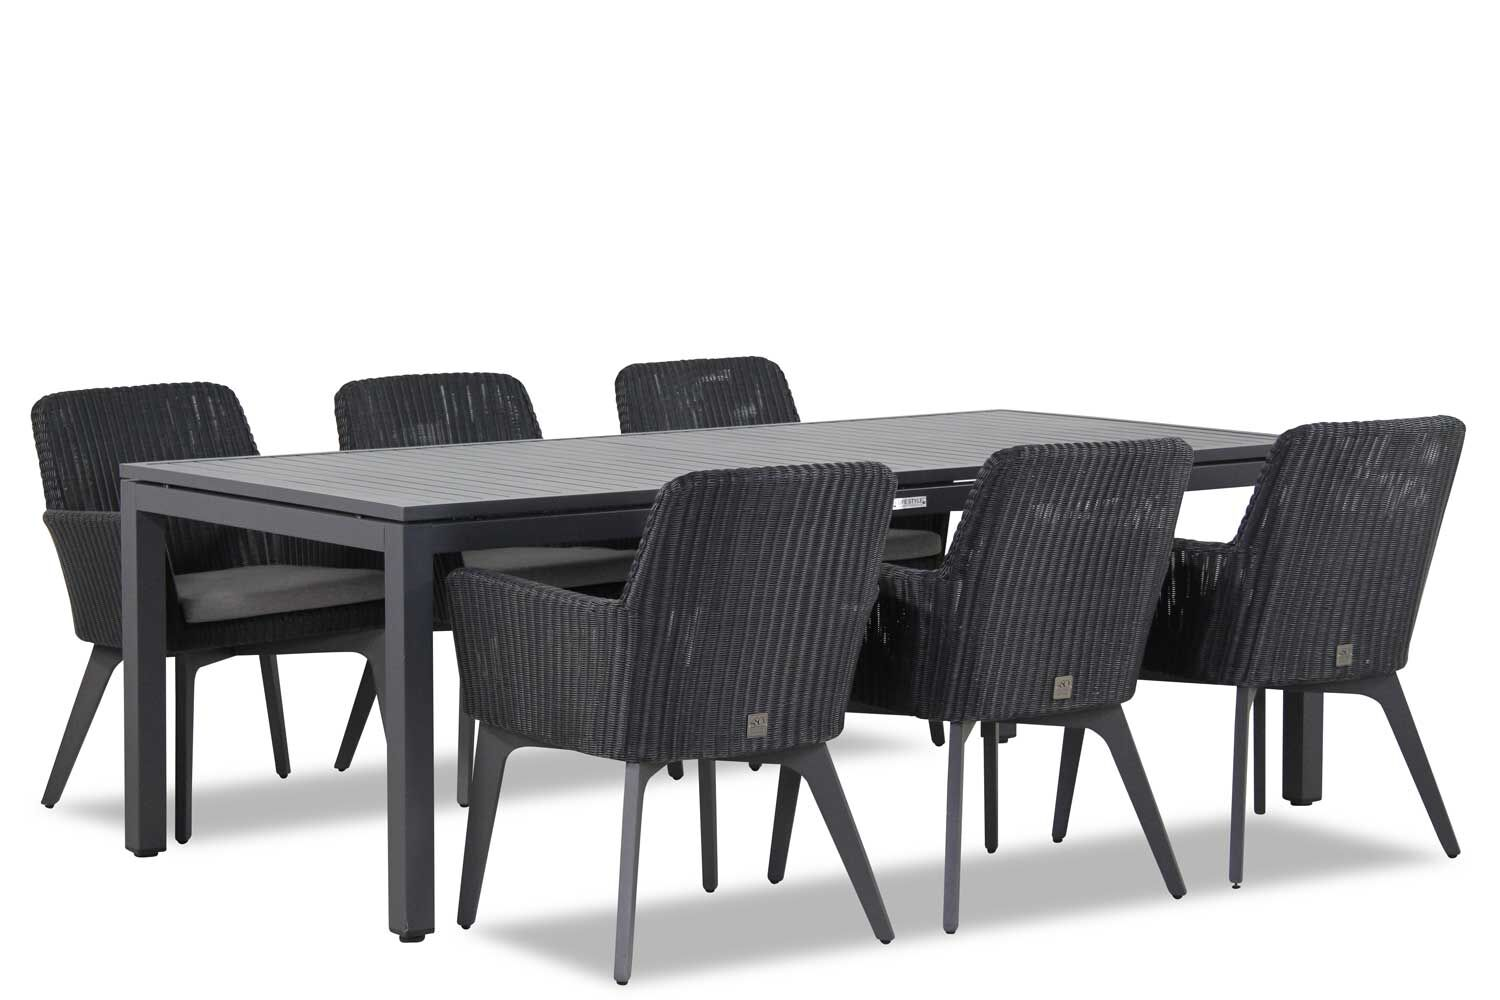 4 Seasons Outdoor Lisboa/Concept 220 cm dining tuinset 7-delig